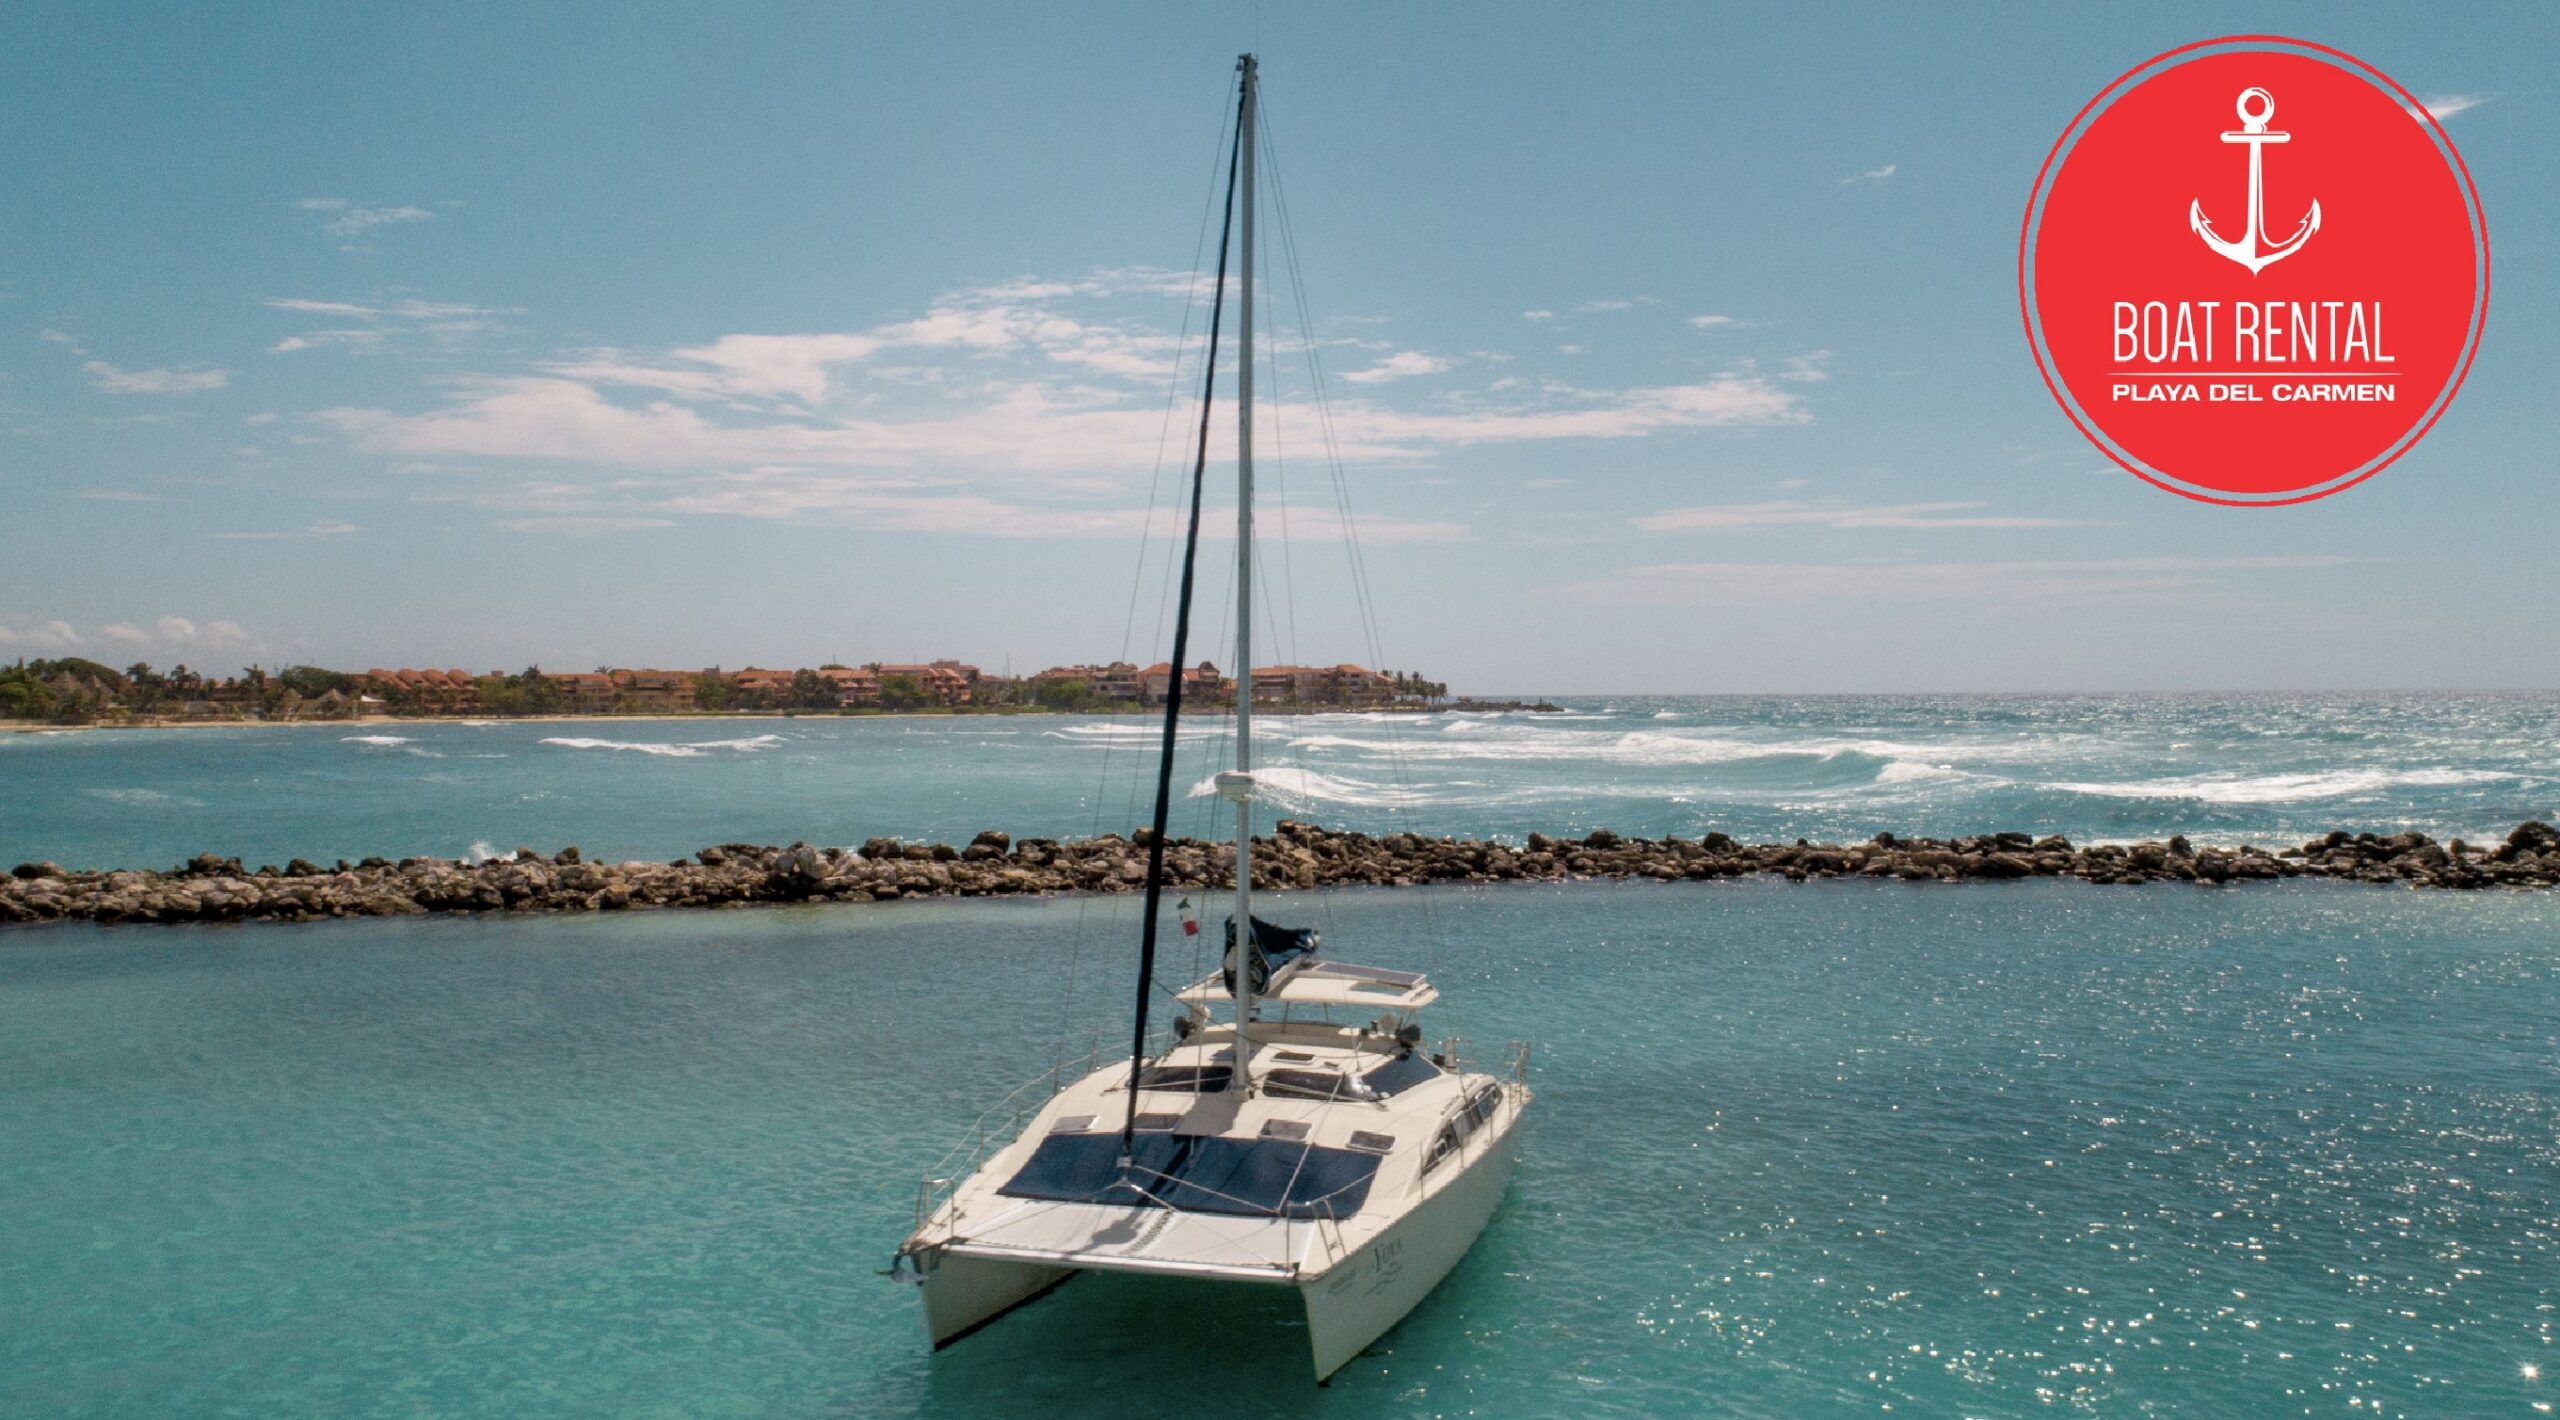 boatrental_playadelcarmen_36ft_catamaran.jpeg